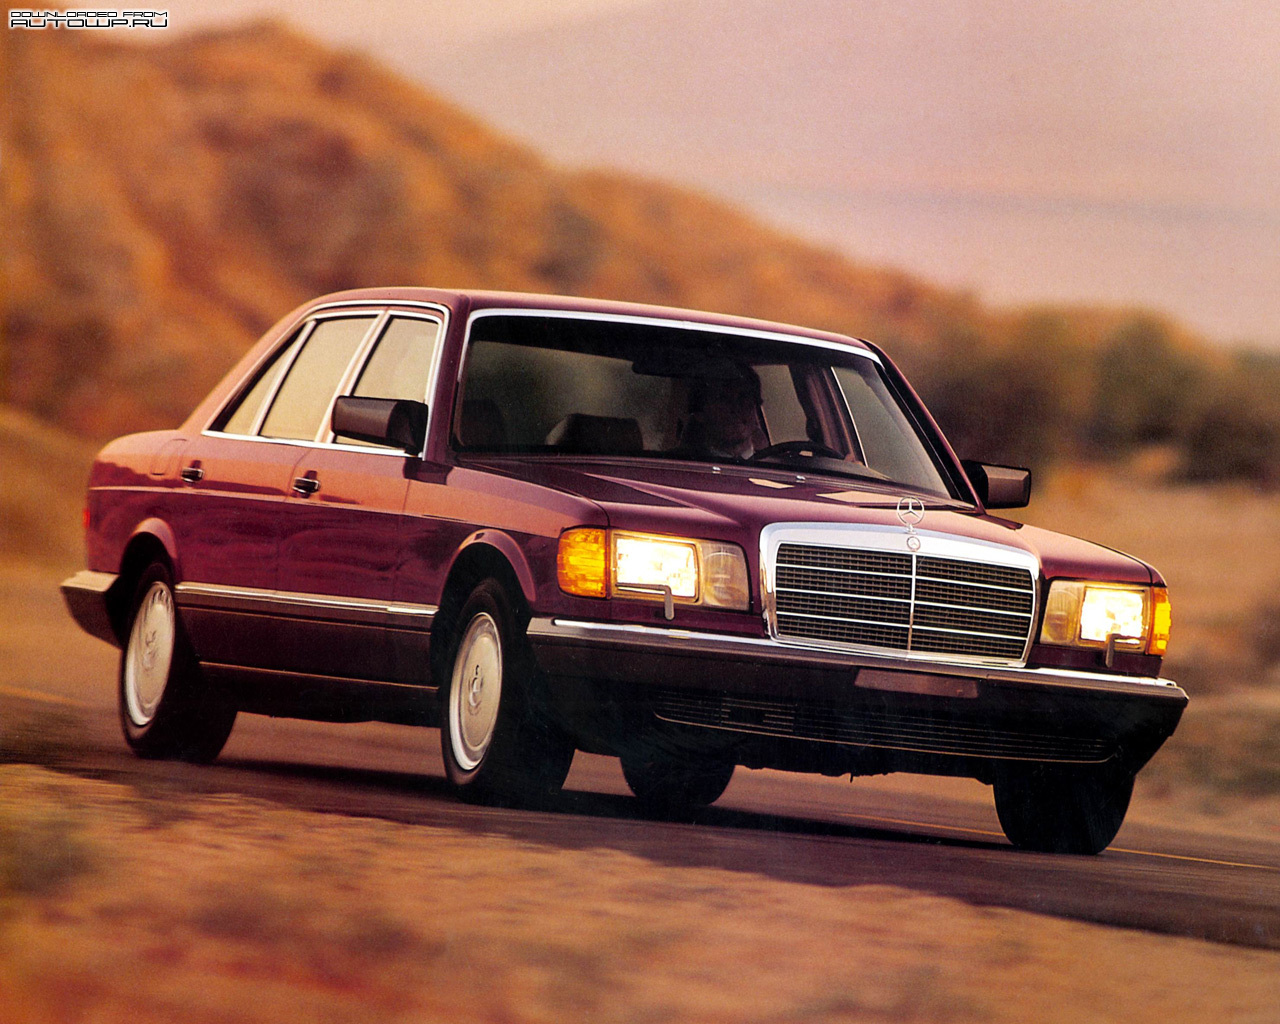 Mercedes Benz S Class W126 Photos Photo Gallery Page 2